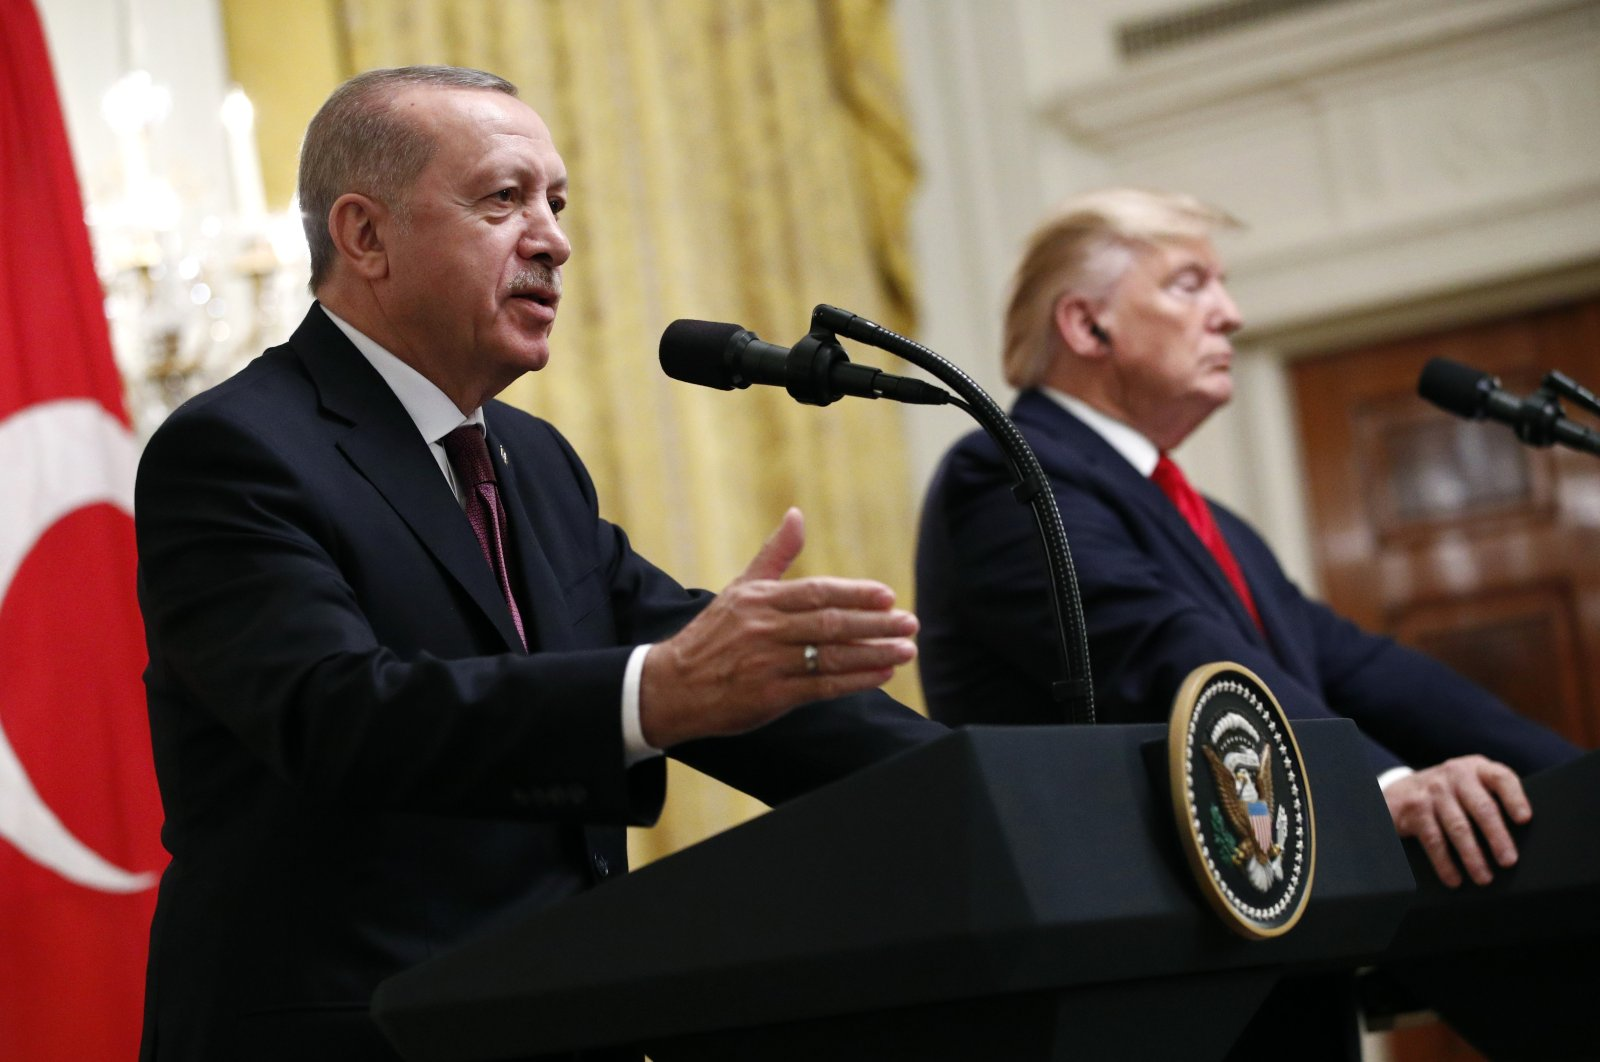 Turkish President Recep Tayyip Erdoğan speaks at a news conference alongside President Donald Trump in the East Room of the White House in Washington, D.C., U.S., Nov. 13, 2019. (AP Photo)